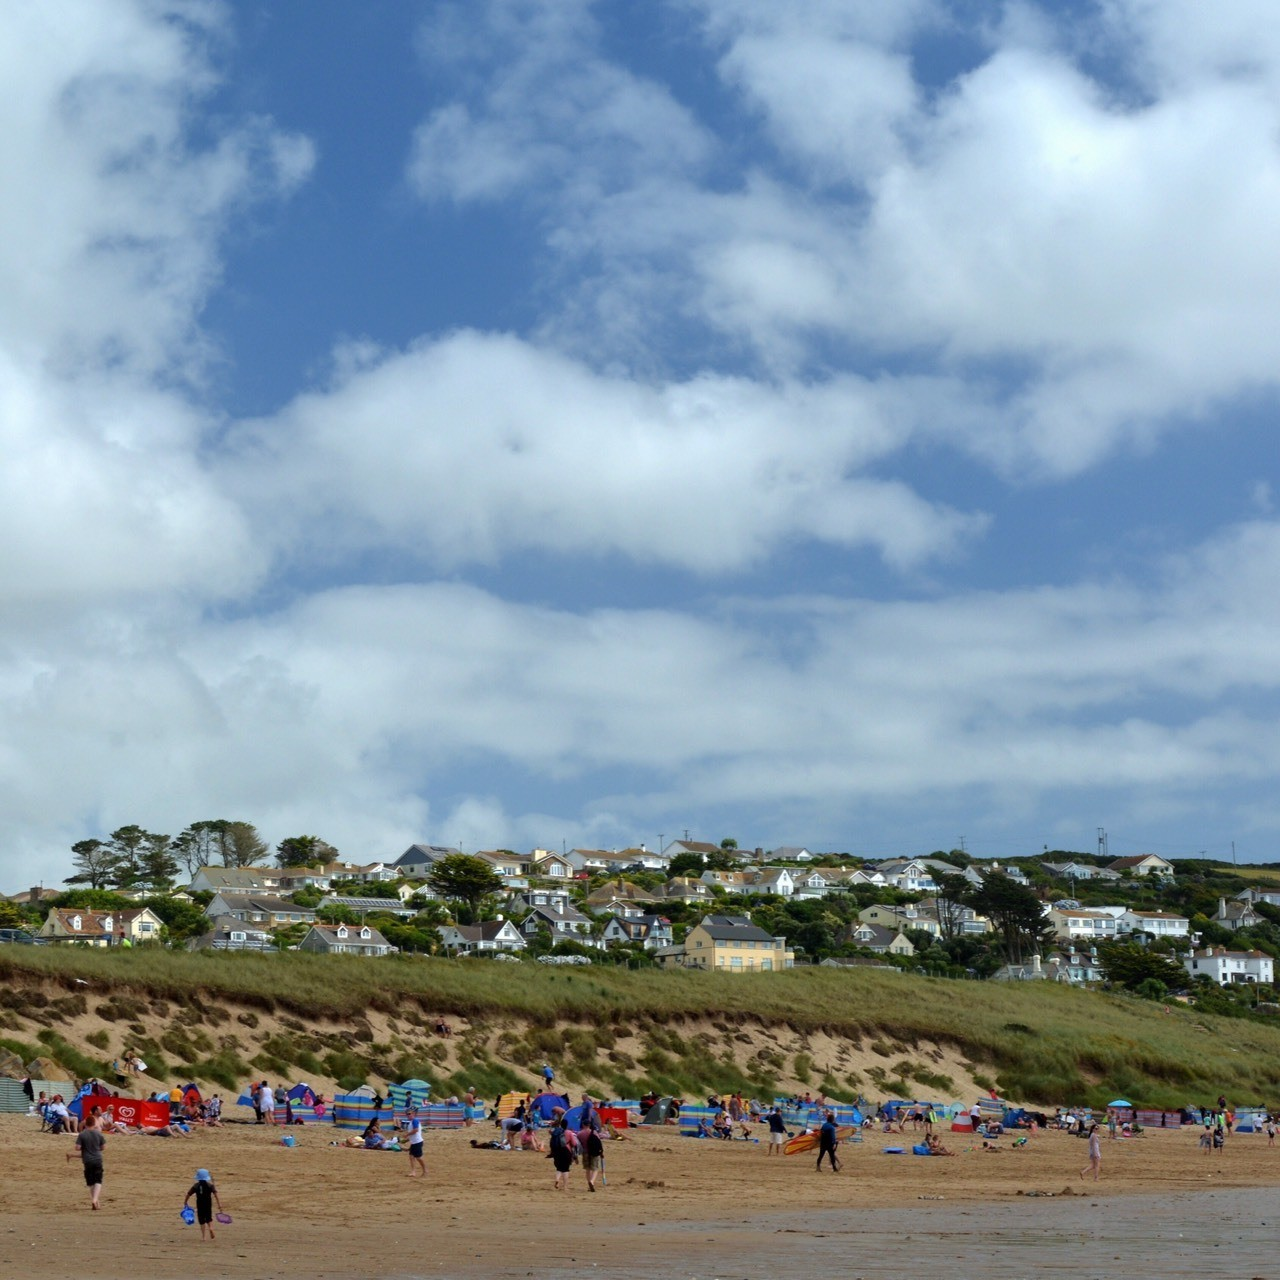 Praa Sands, Sunday lunchtime